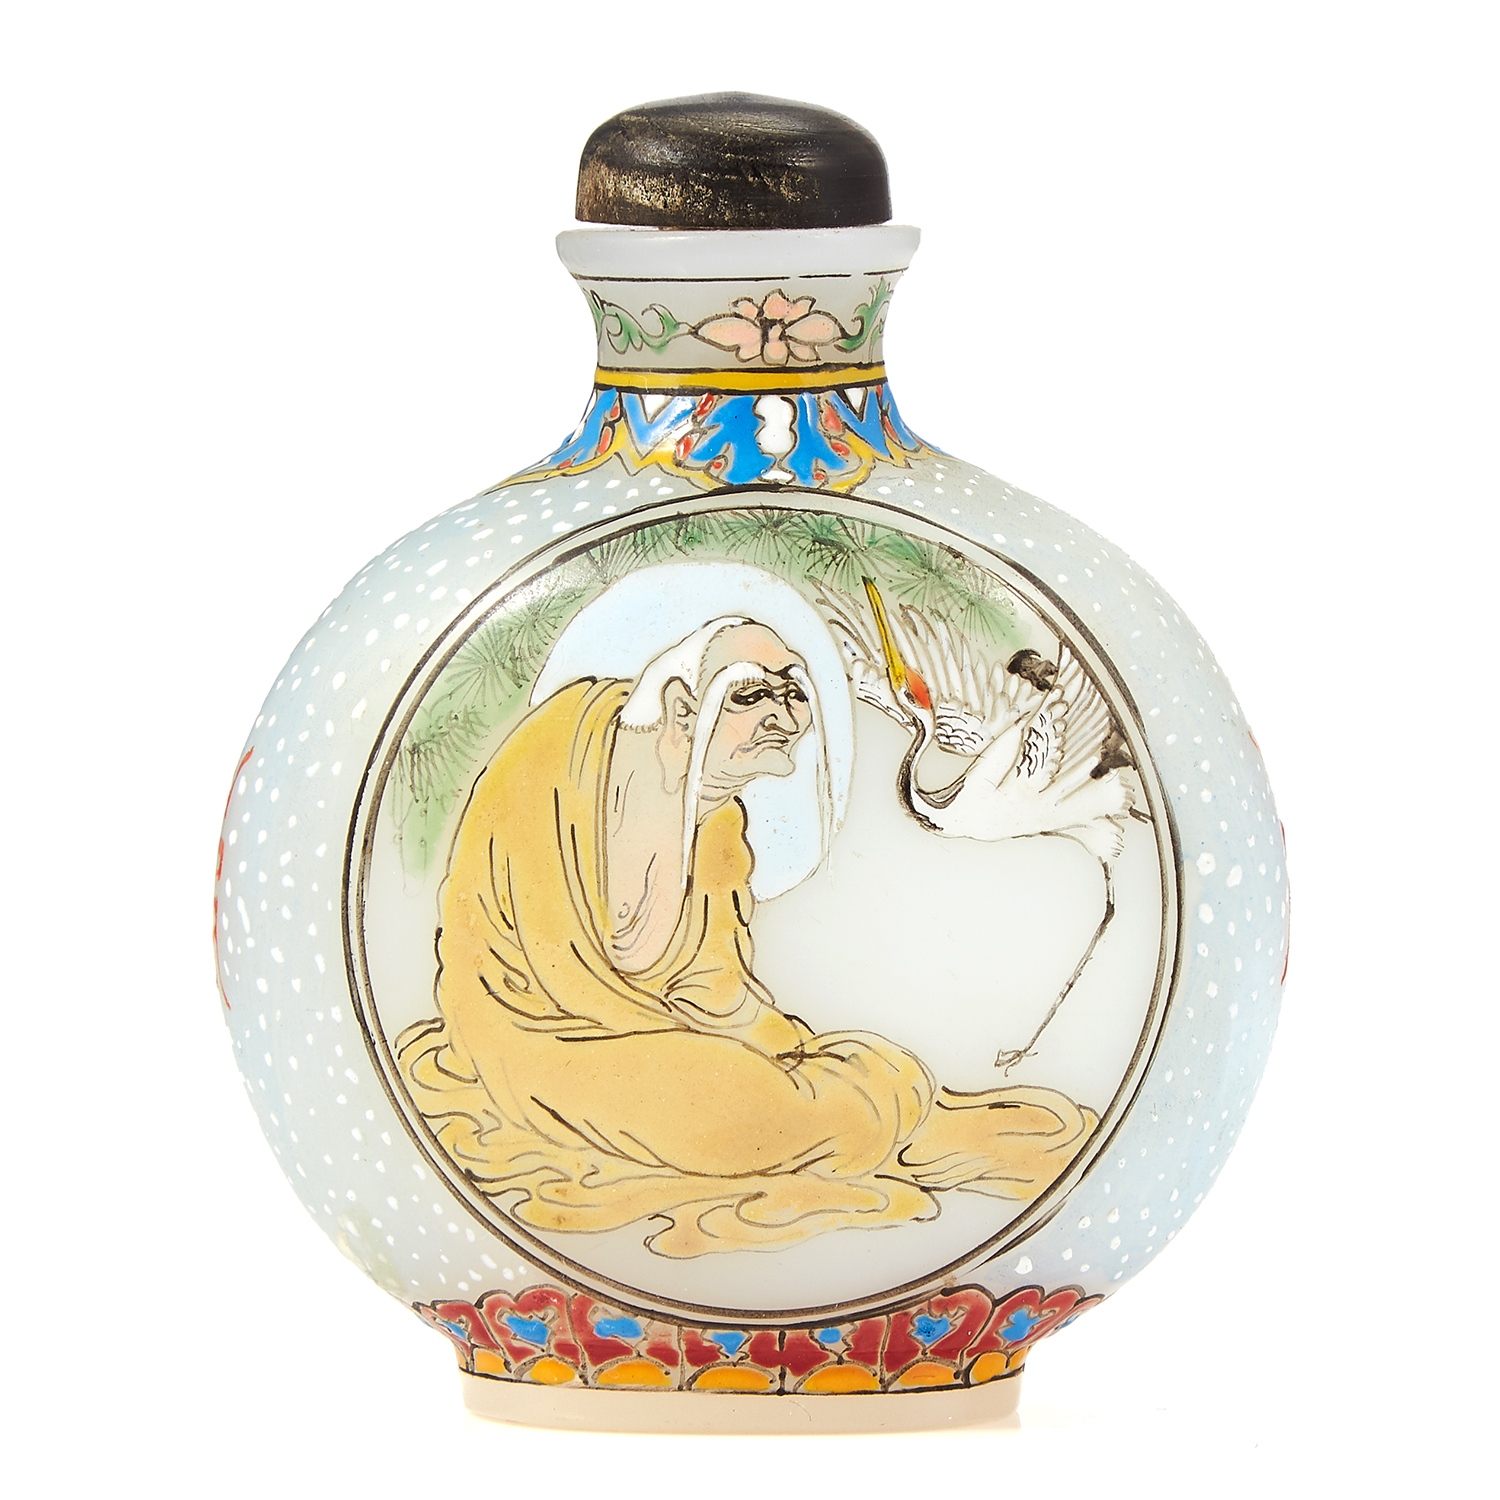 Los 48 - A VINTAGE CHINESE PAINTED GLASS SNUFF BOTTLE with scenes depicting elderly gentleman and animals,